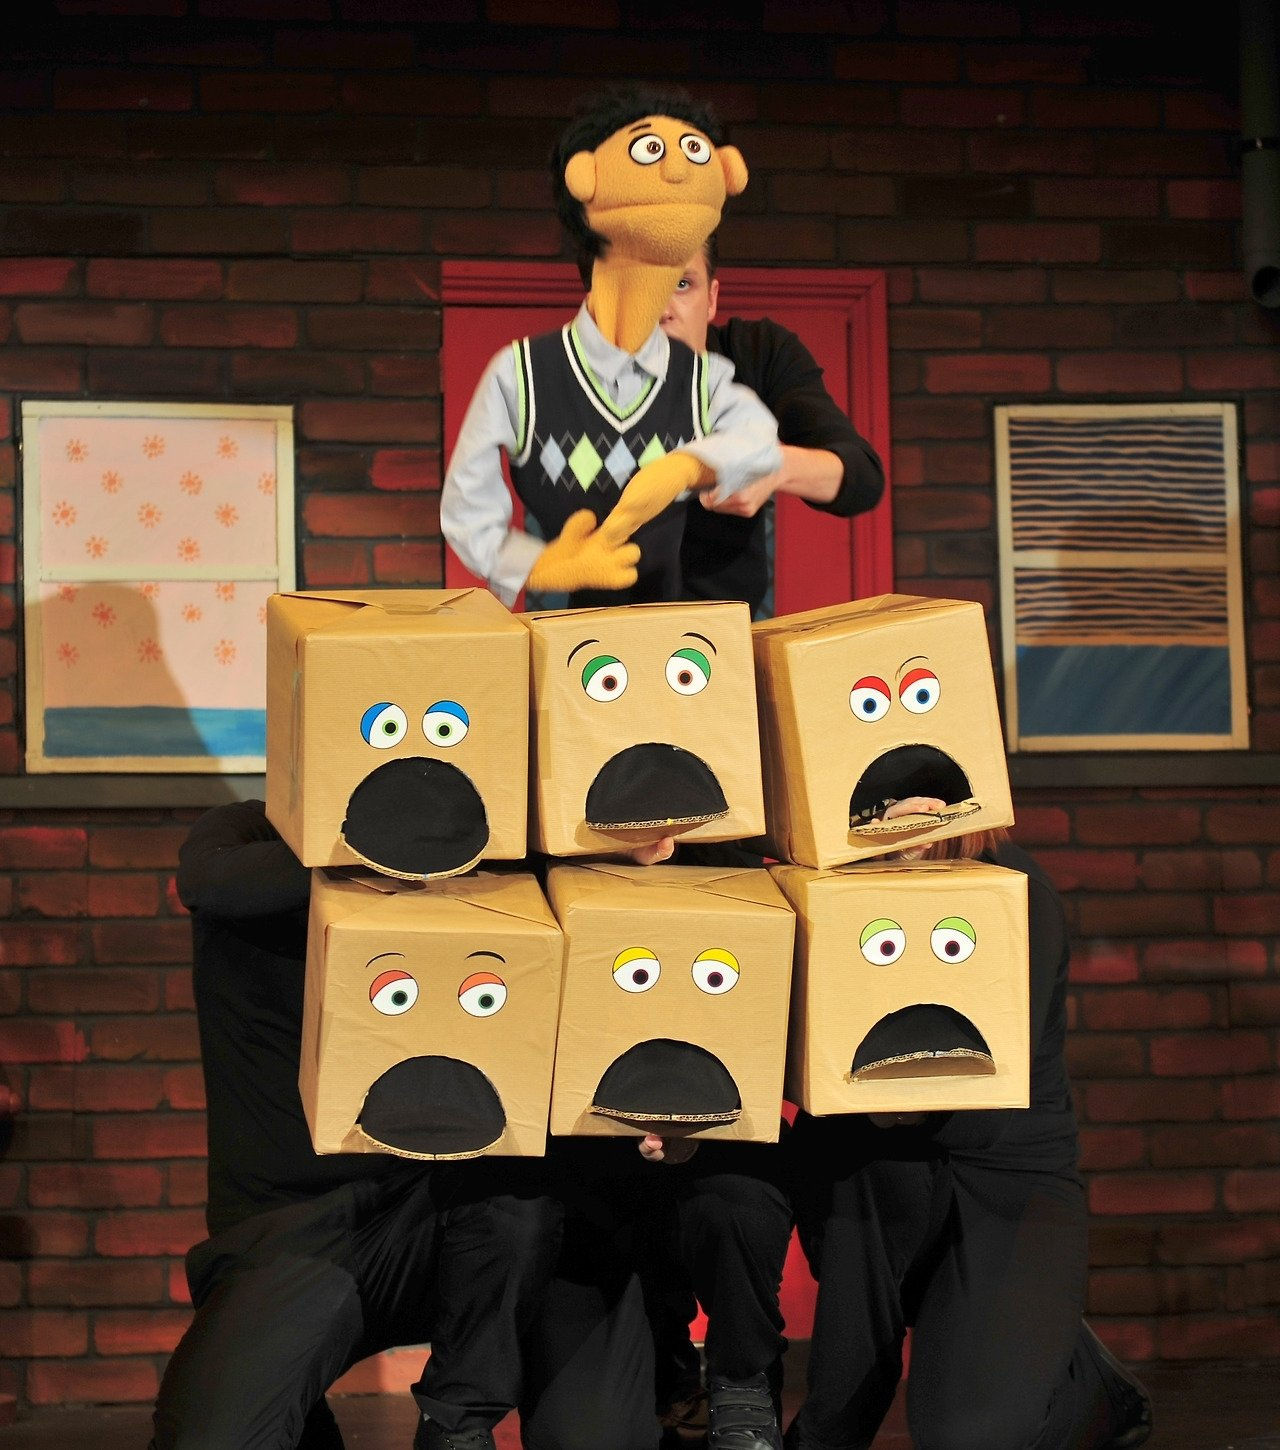 10 Most Recommended Bad Idea Bears Avenue Q bad avenue q puppets princeton instantly regretted taking the bad